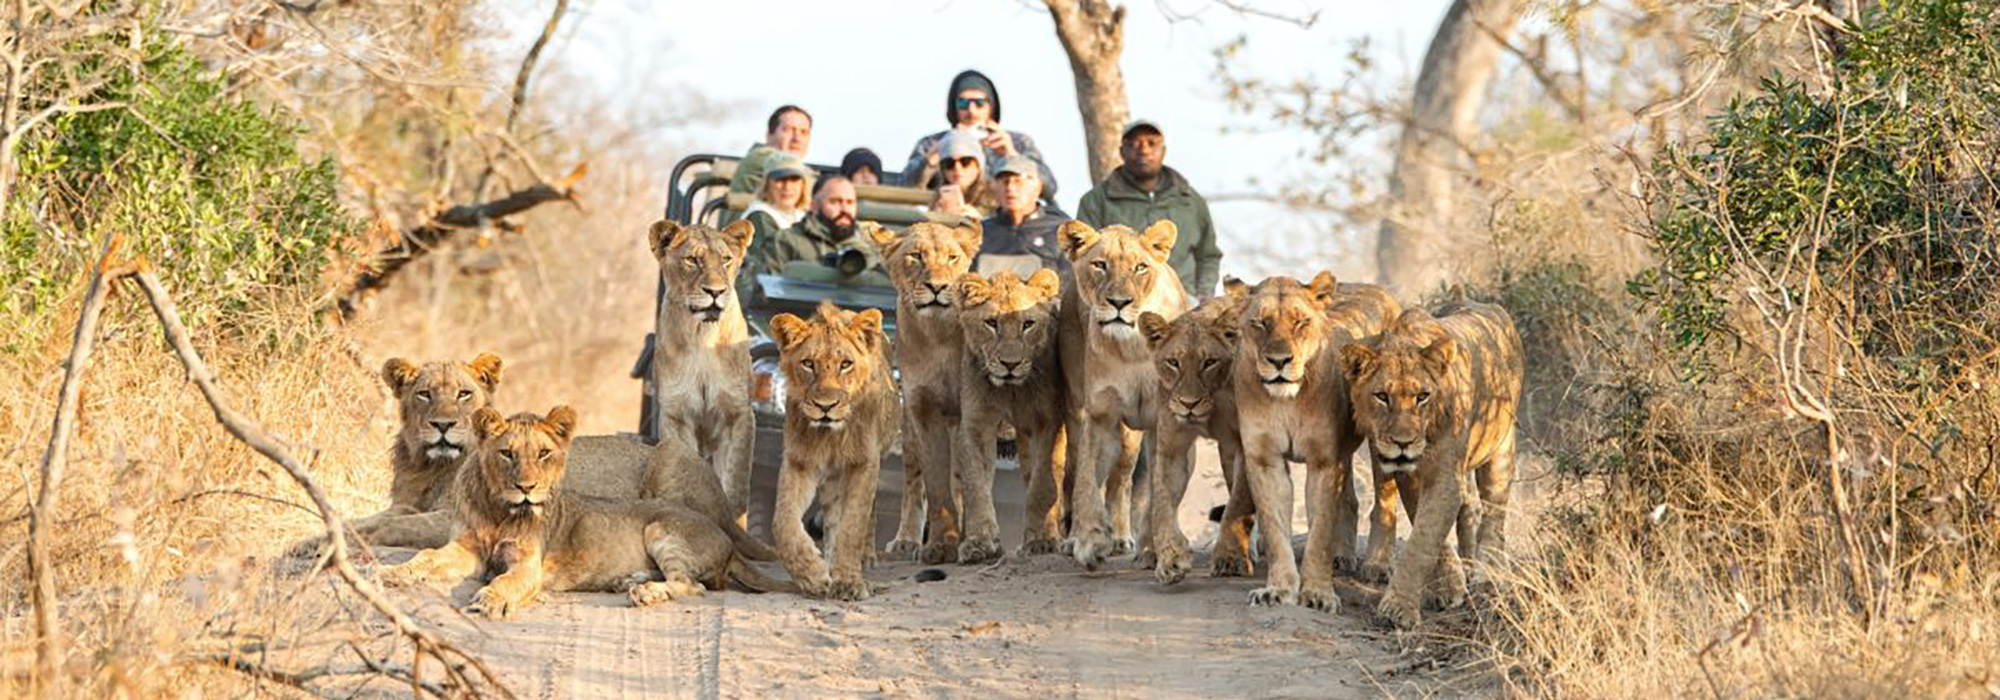 Lions blocking the road